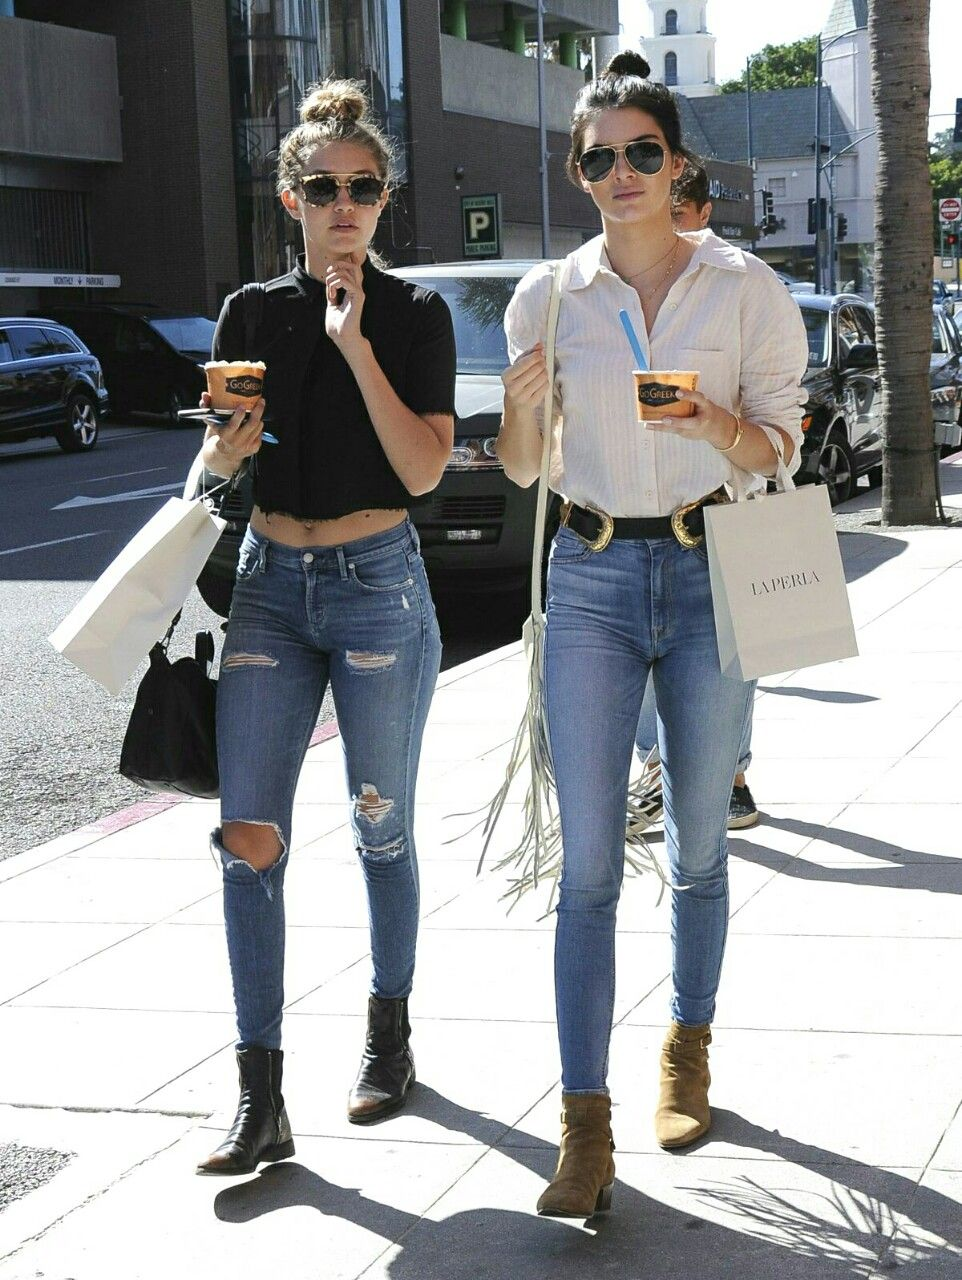 Gigi Hadid and Kendall Jenner street style - out and about shopping in plain shirts and high waisted jeans!